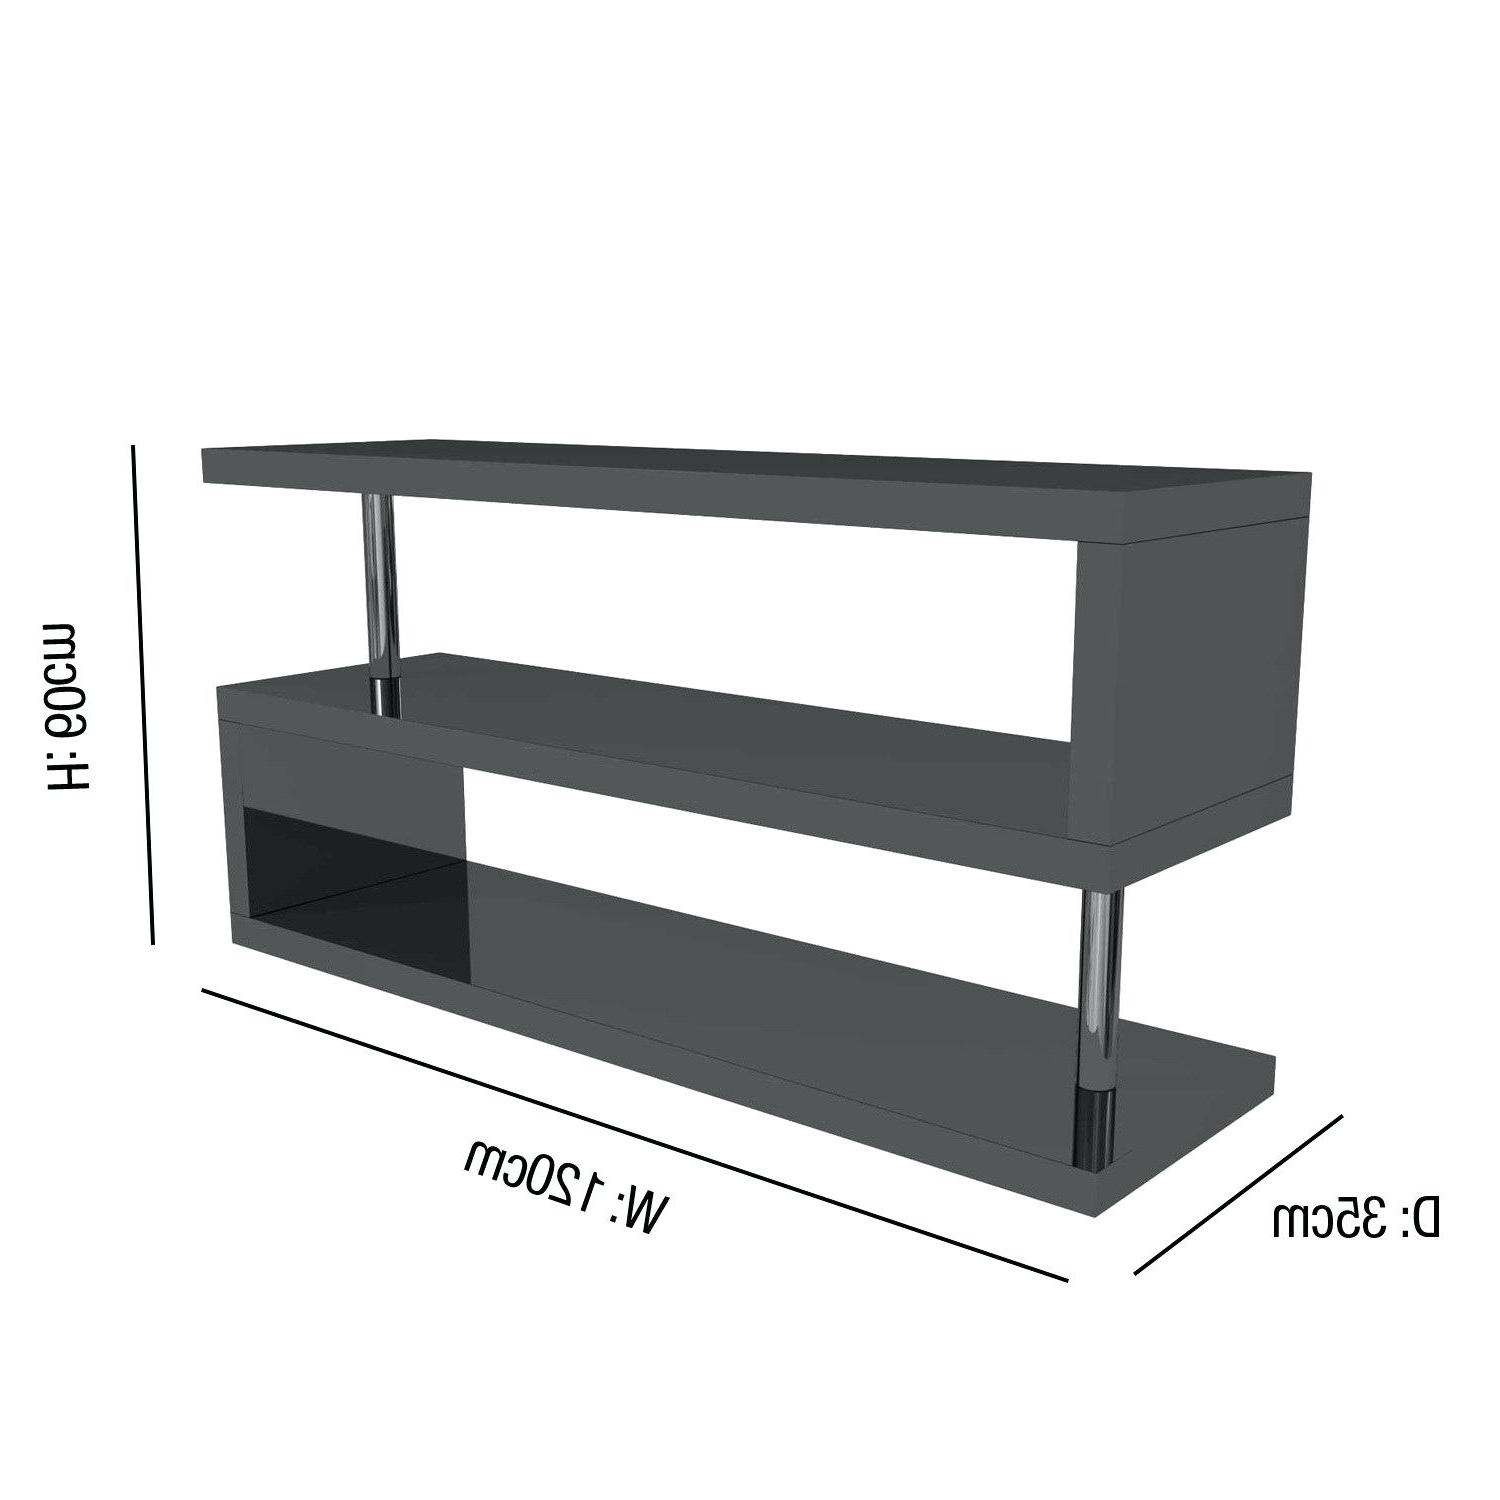 60 Cm High Tv Stand Within Latest Black And Grey Tv Unit Grey High Gloss Geometric Unit Stand Black (View 7 of 20)